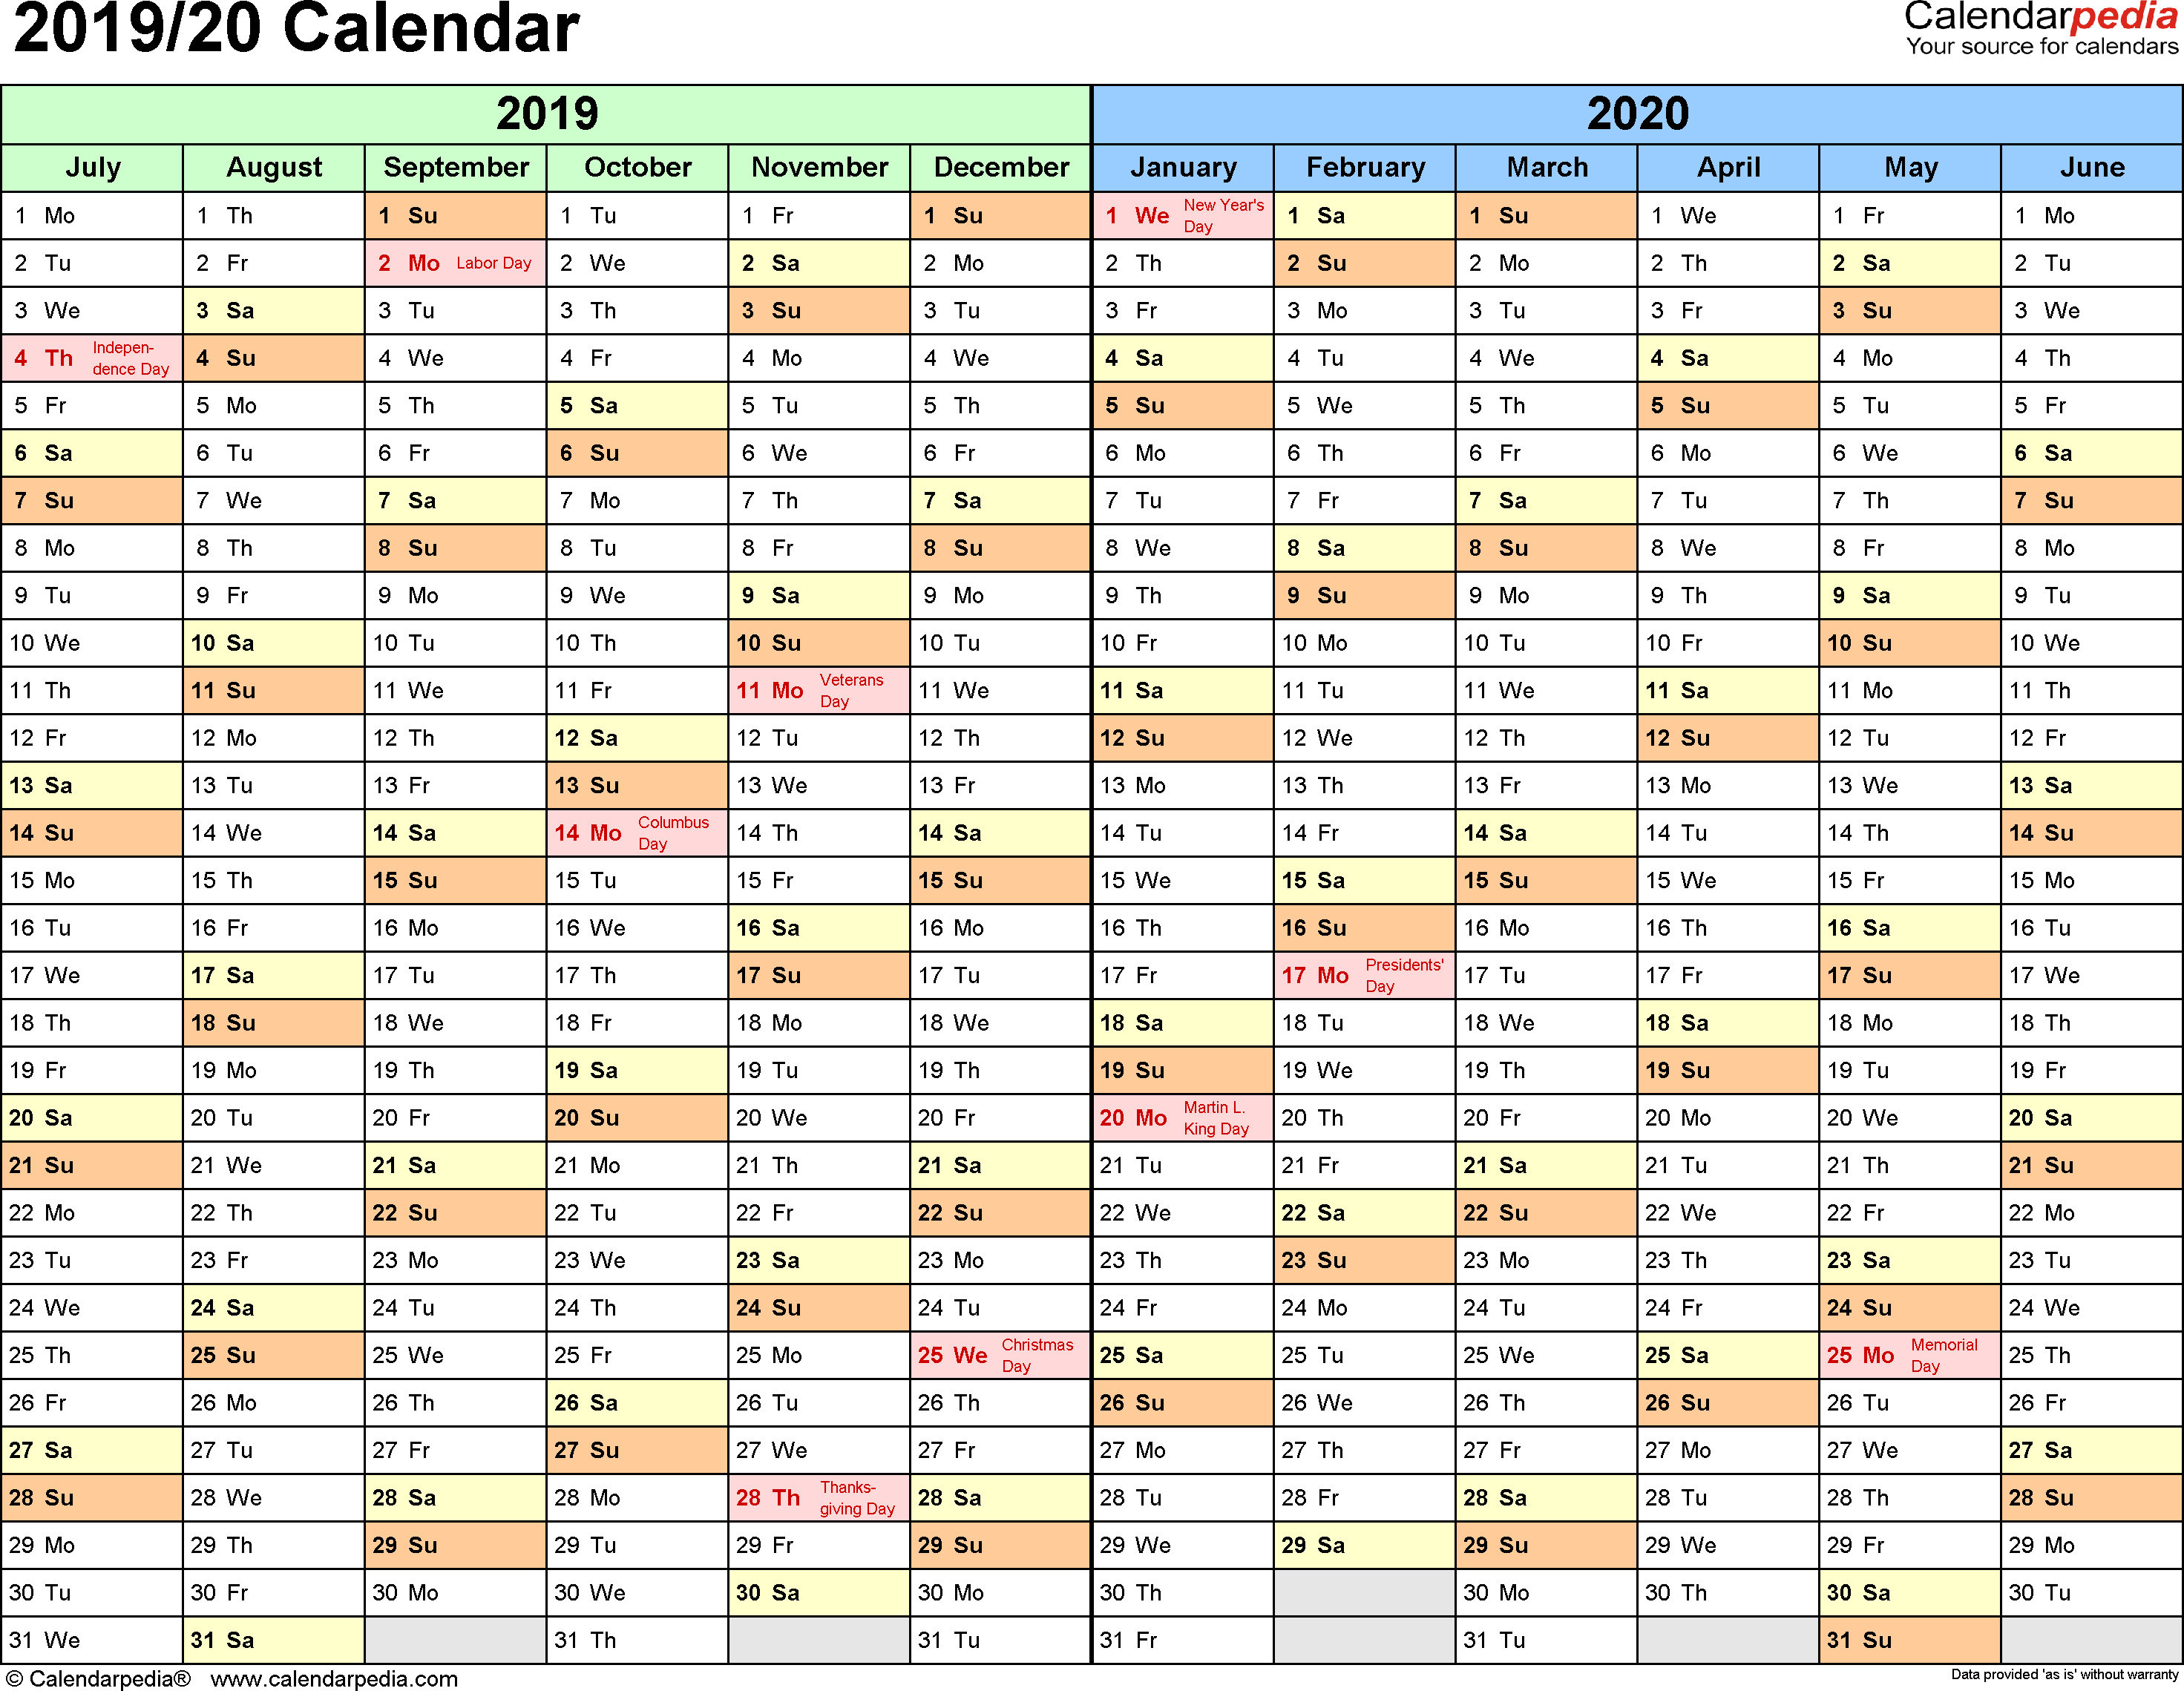 Financial Year Calendar 2019 20 Australia With Split July To June PDF Templates